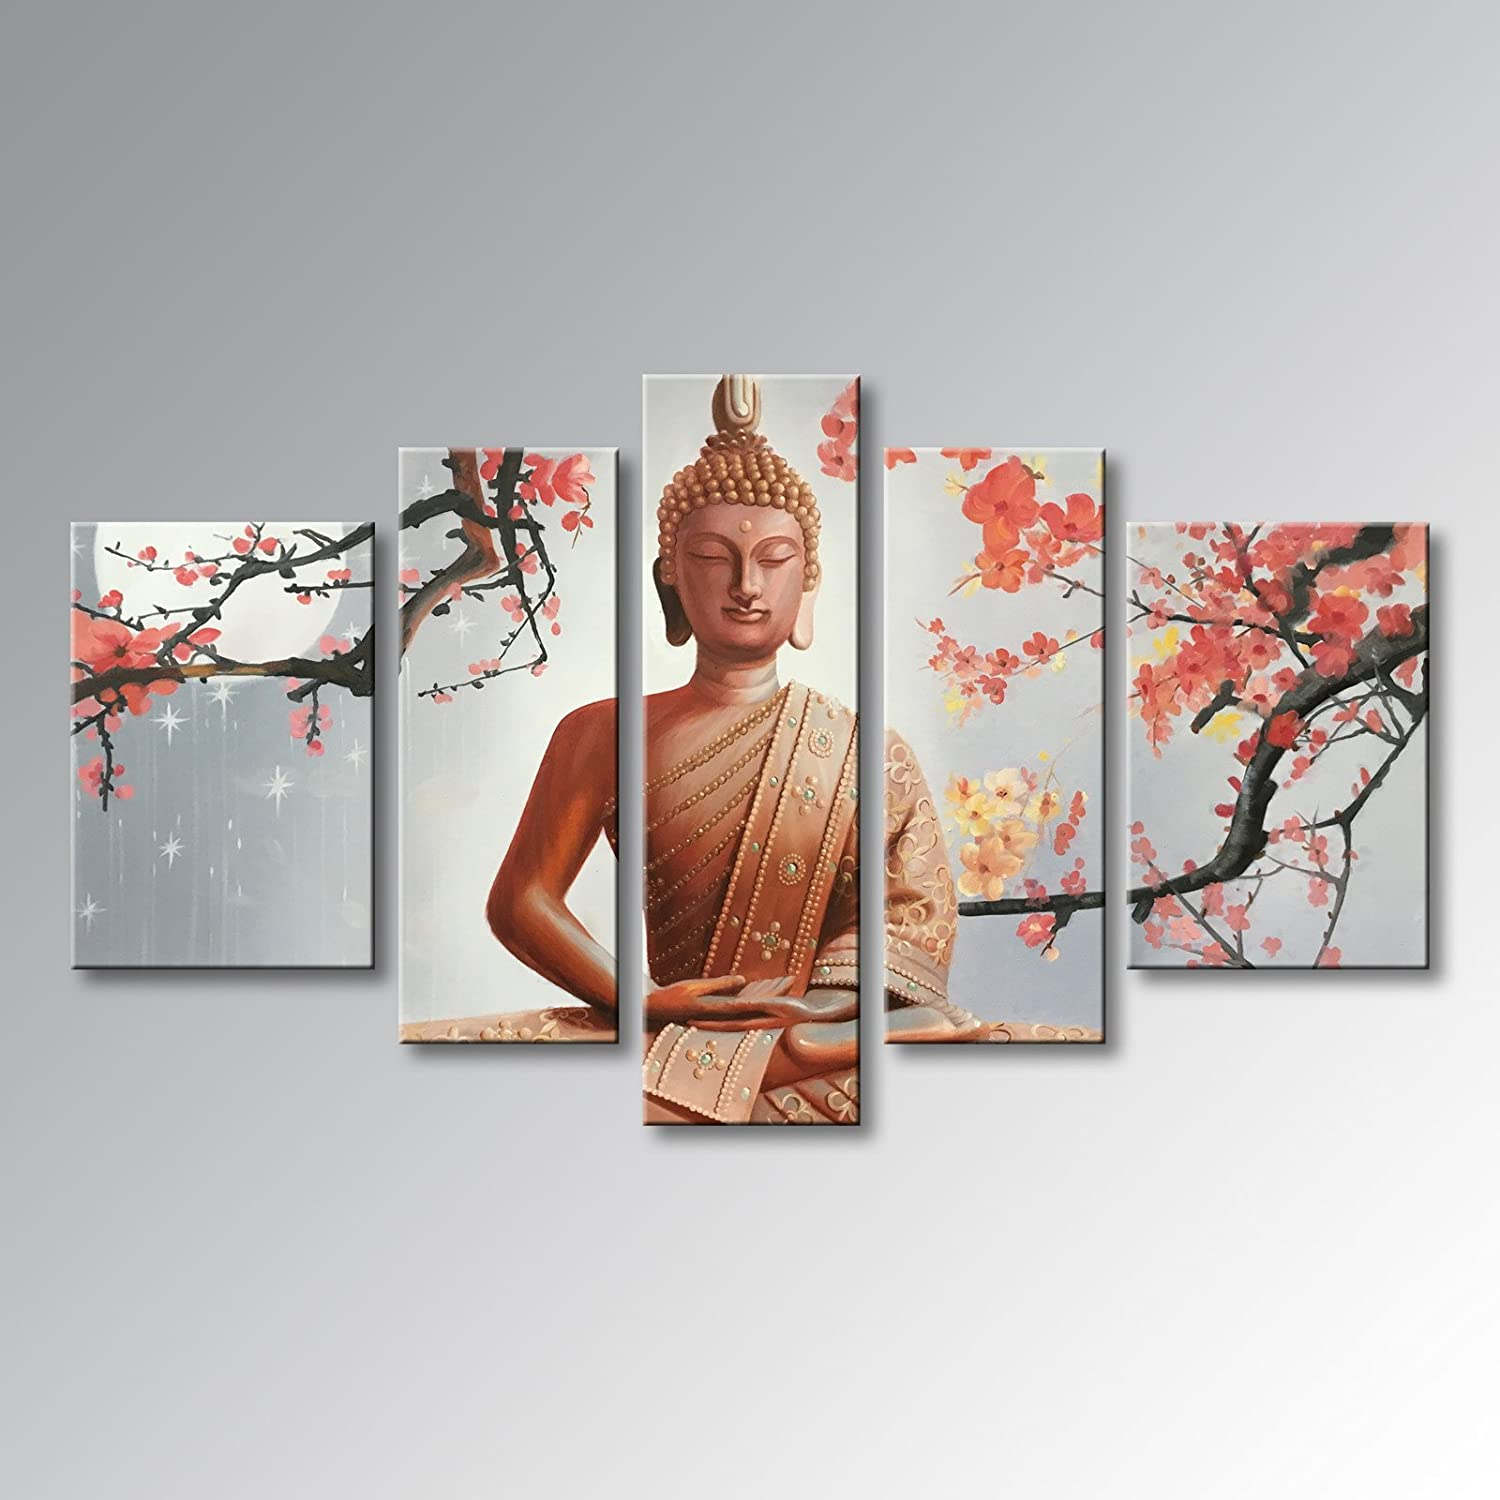 Winpeak Pure Hand Painted Framed Canvas Art Buddha Paintings on Canvas 5 paenl Wall Decor for Living Room Stretched Ready to Hang (58  W x 32  H (14 x20  x2, 10 x28  x2, 10 x32  x1))